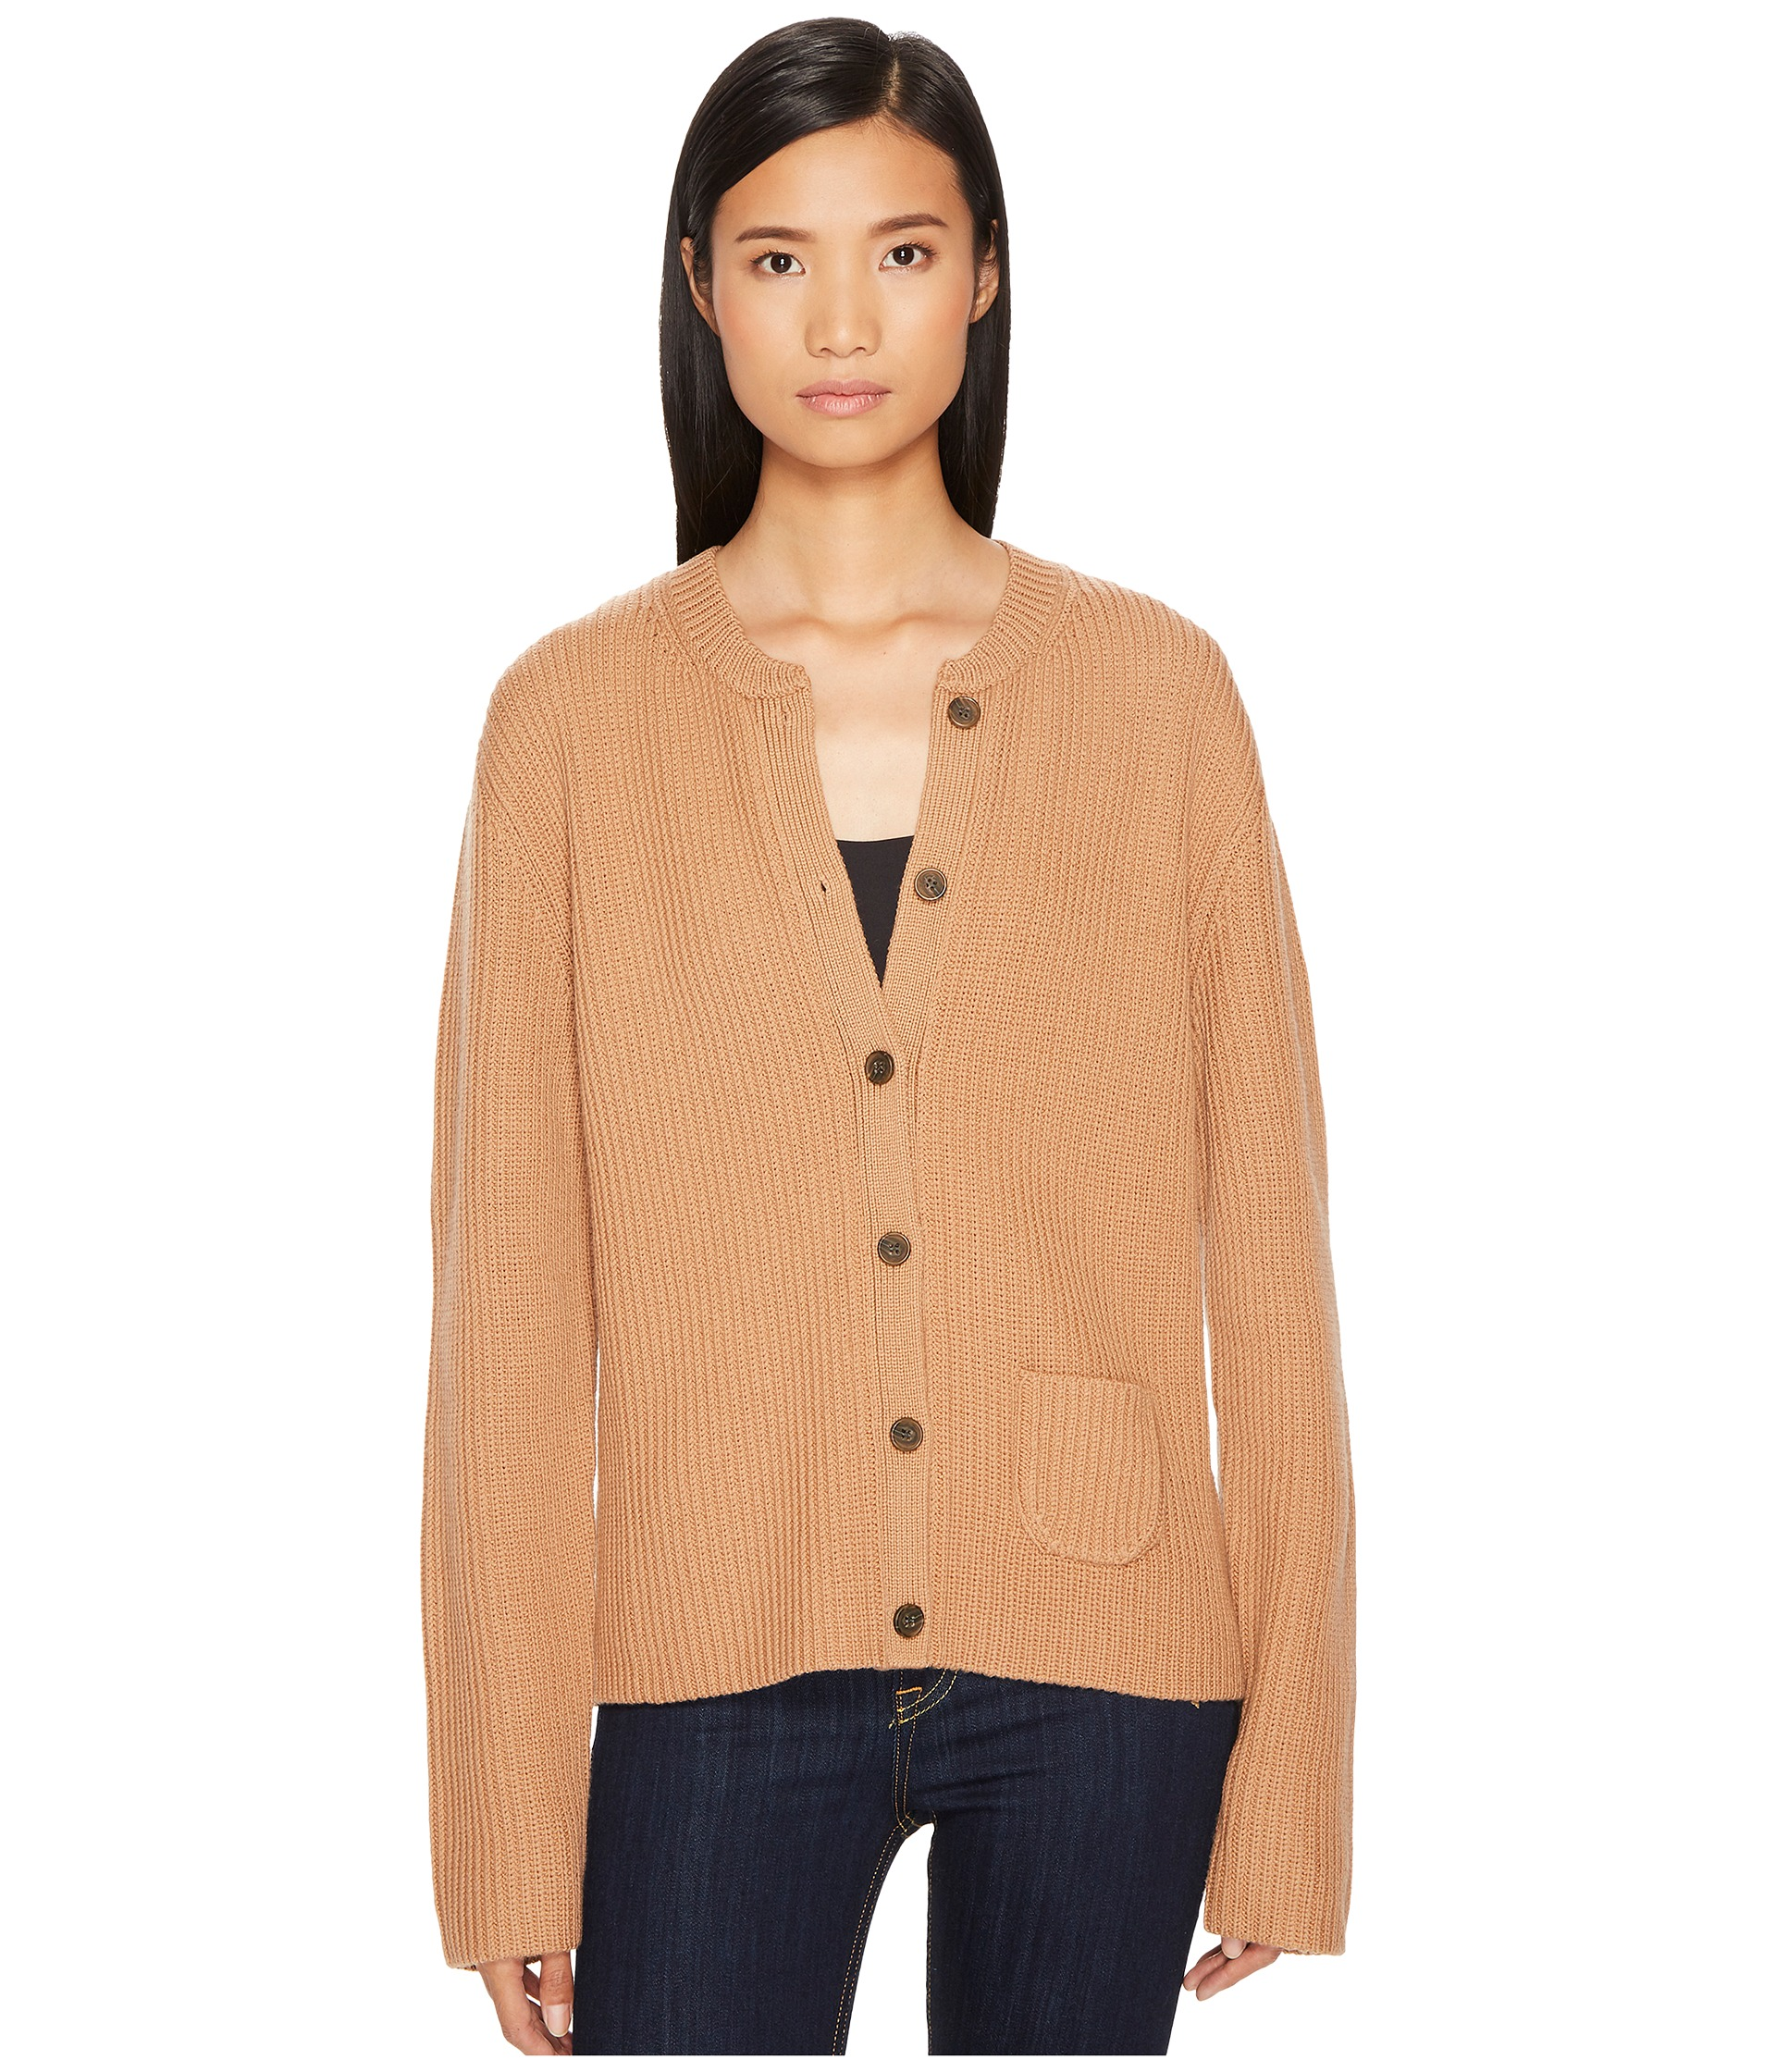 Sweaters, Women, Cardigans | Shipped Free at Zappos